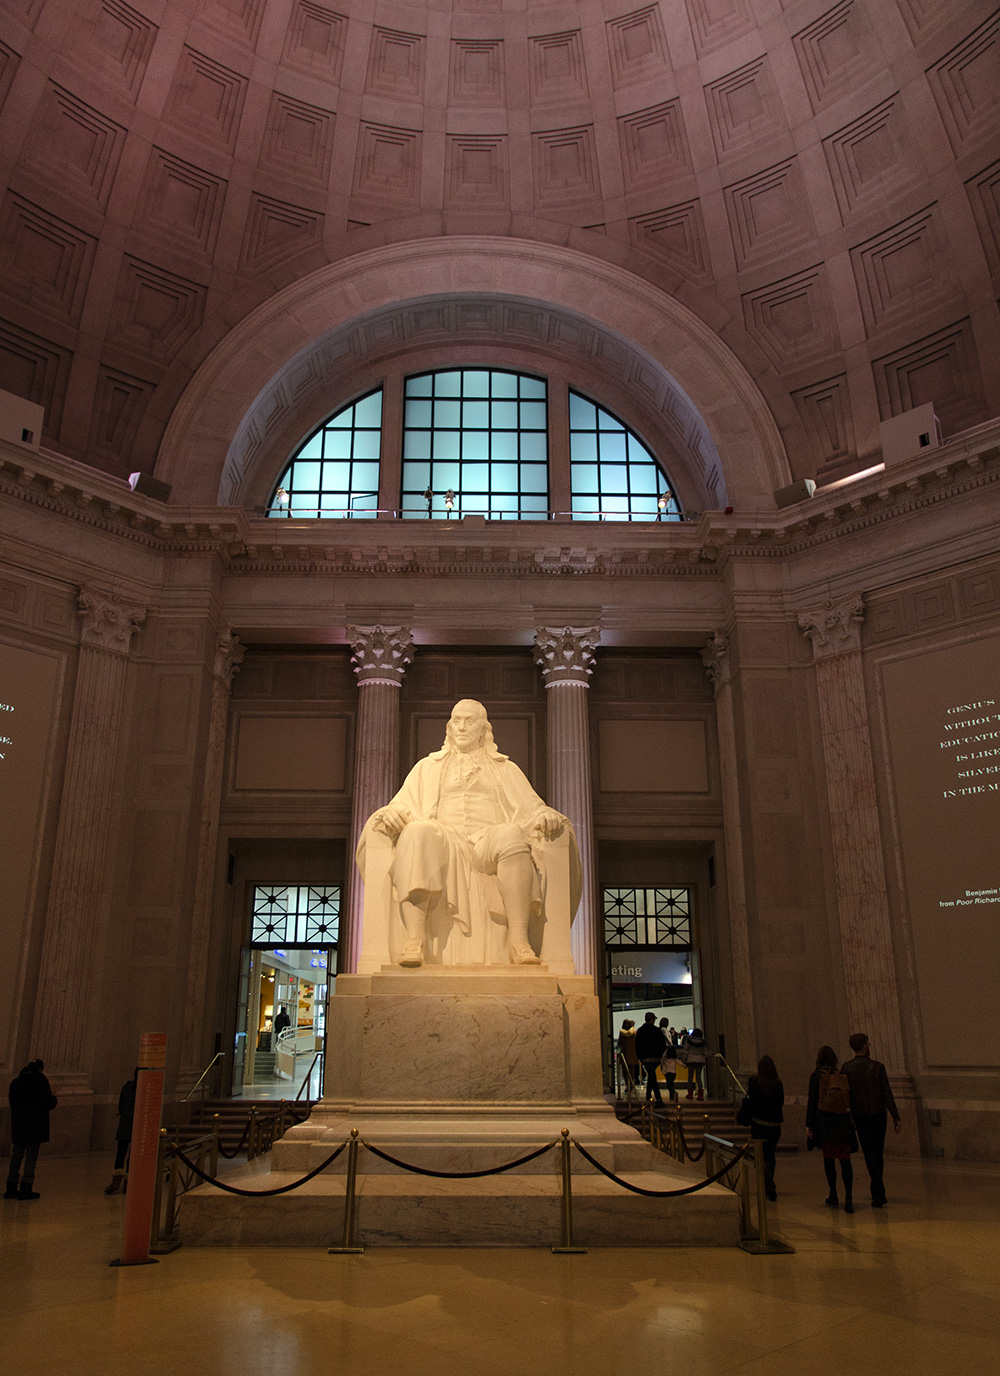 20-foot high Ben Franklin statue at The Franklin Institute in Philadelphia.